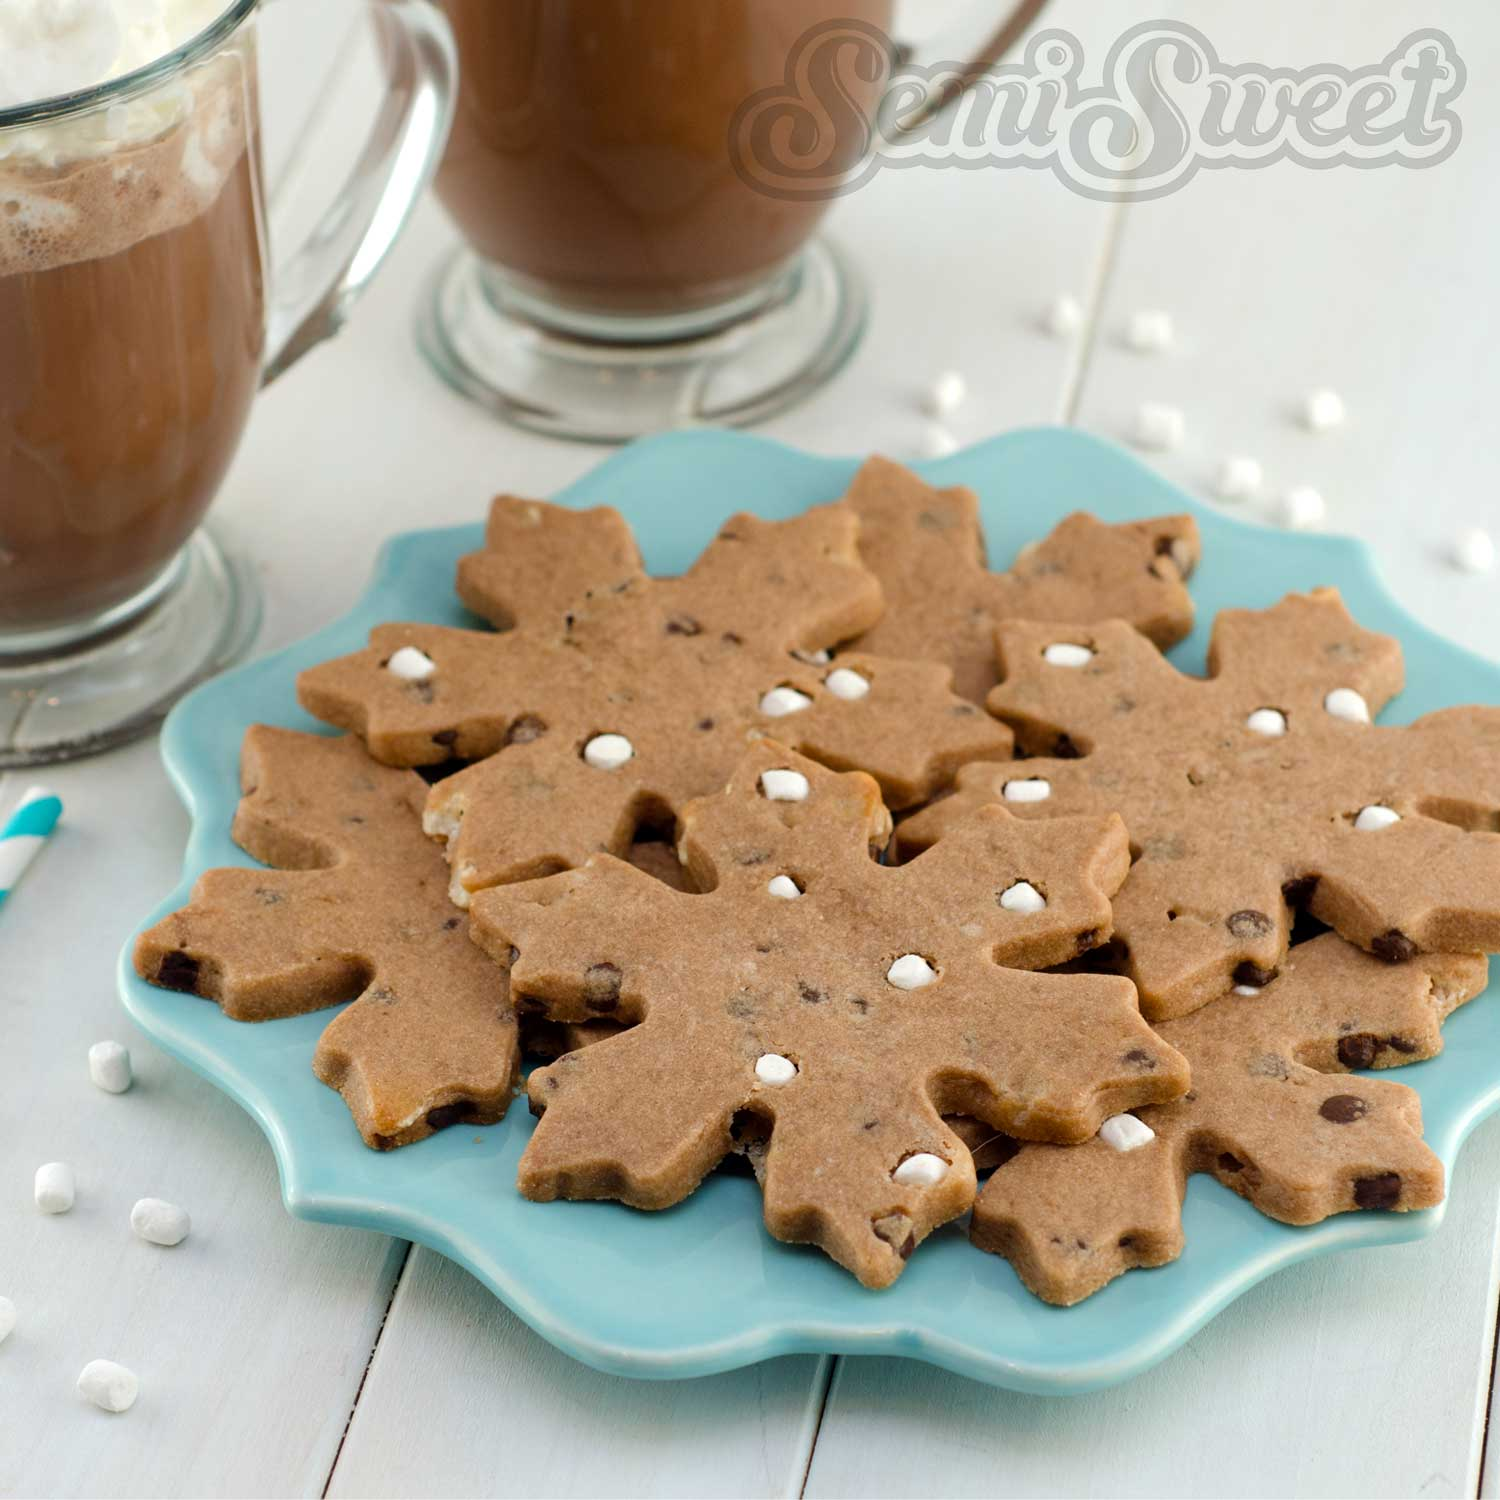 hot chocolate roll-out cookie recipe by Semi Sweet Designs